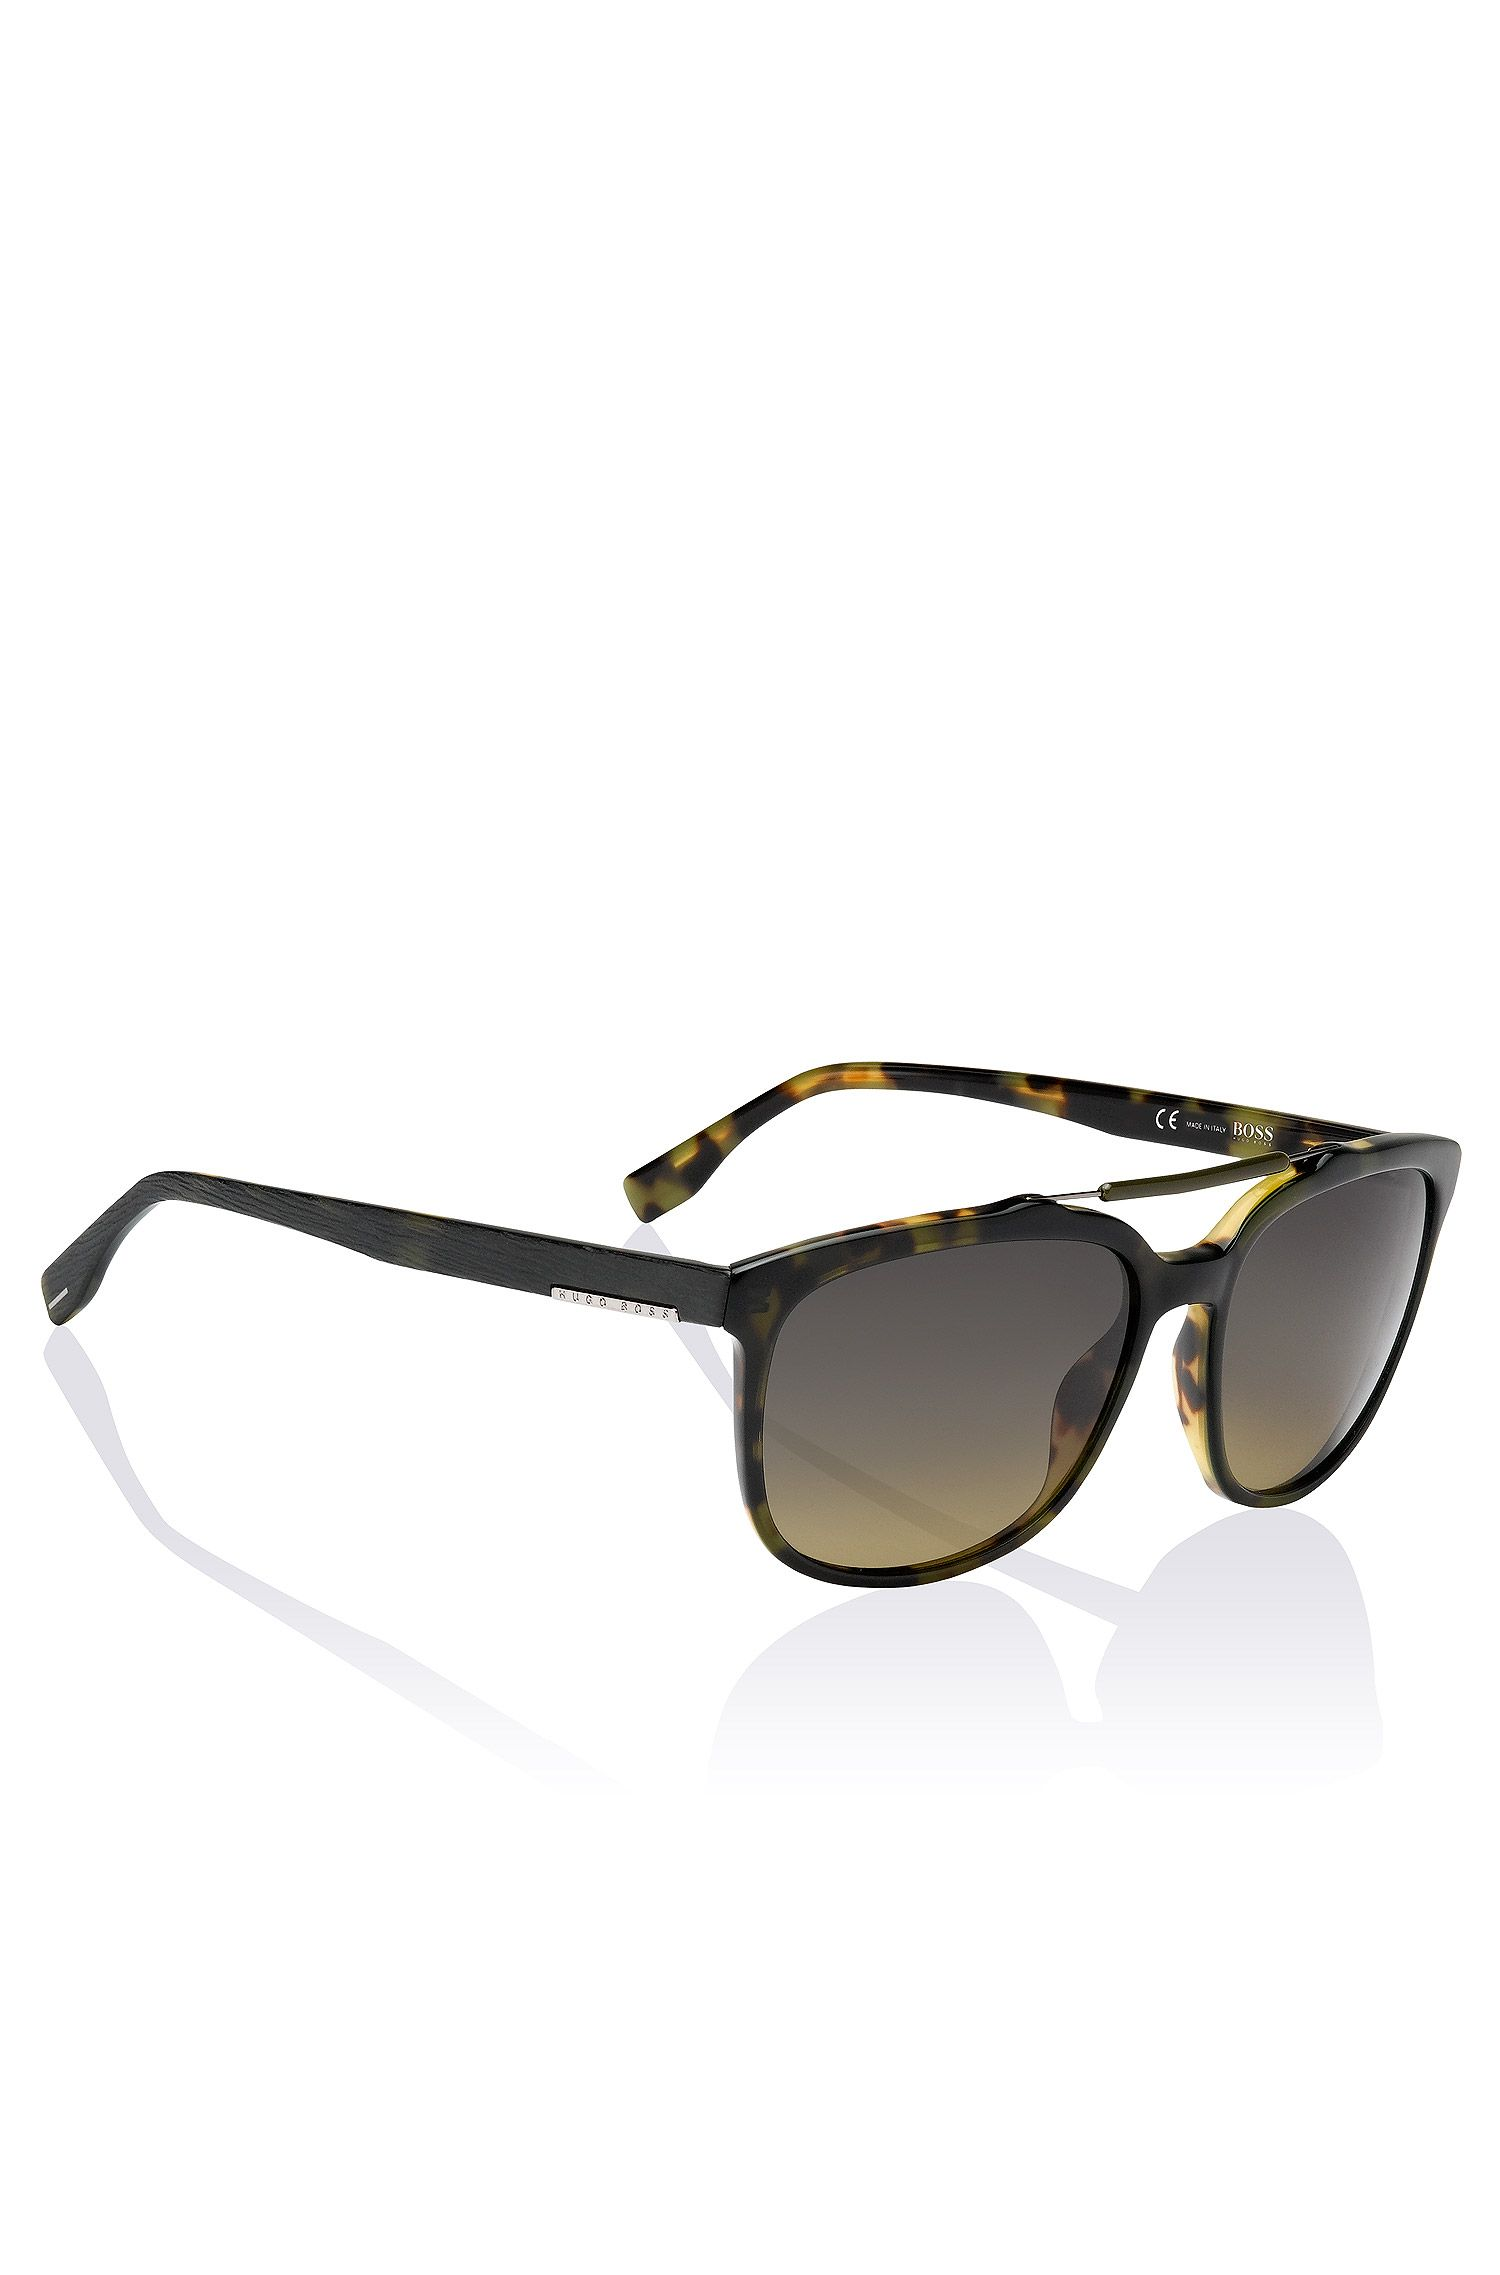 'BOSS 0636/S' acetate sunglasses